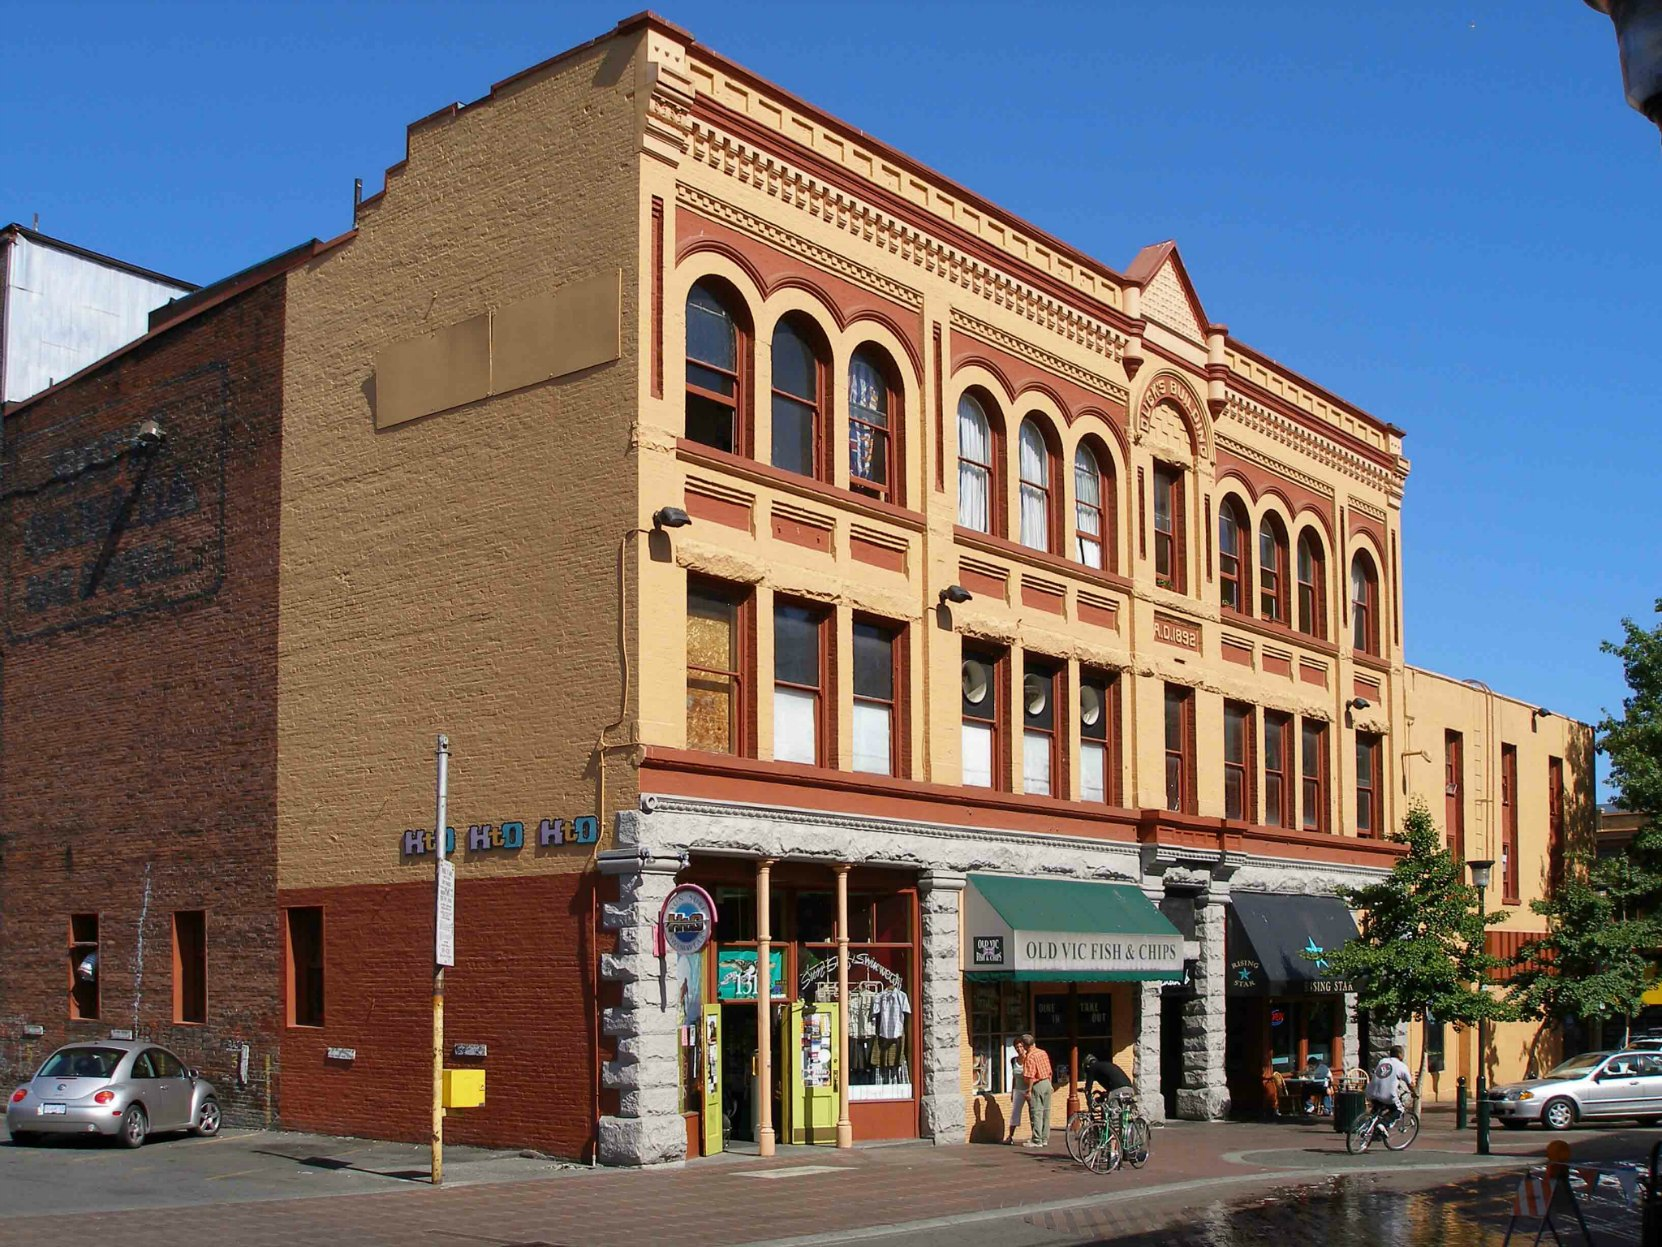 Duck's Building, Broad Street, Victoria, B.C. Built in 1892 for Simeon Duck.